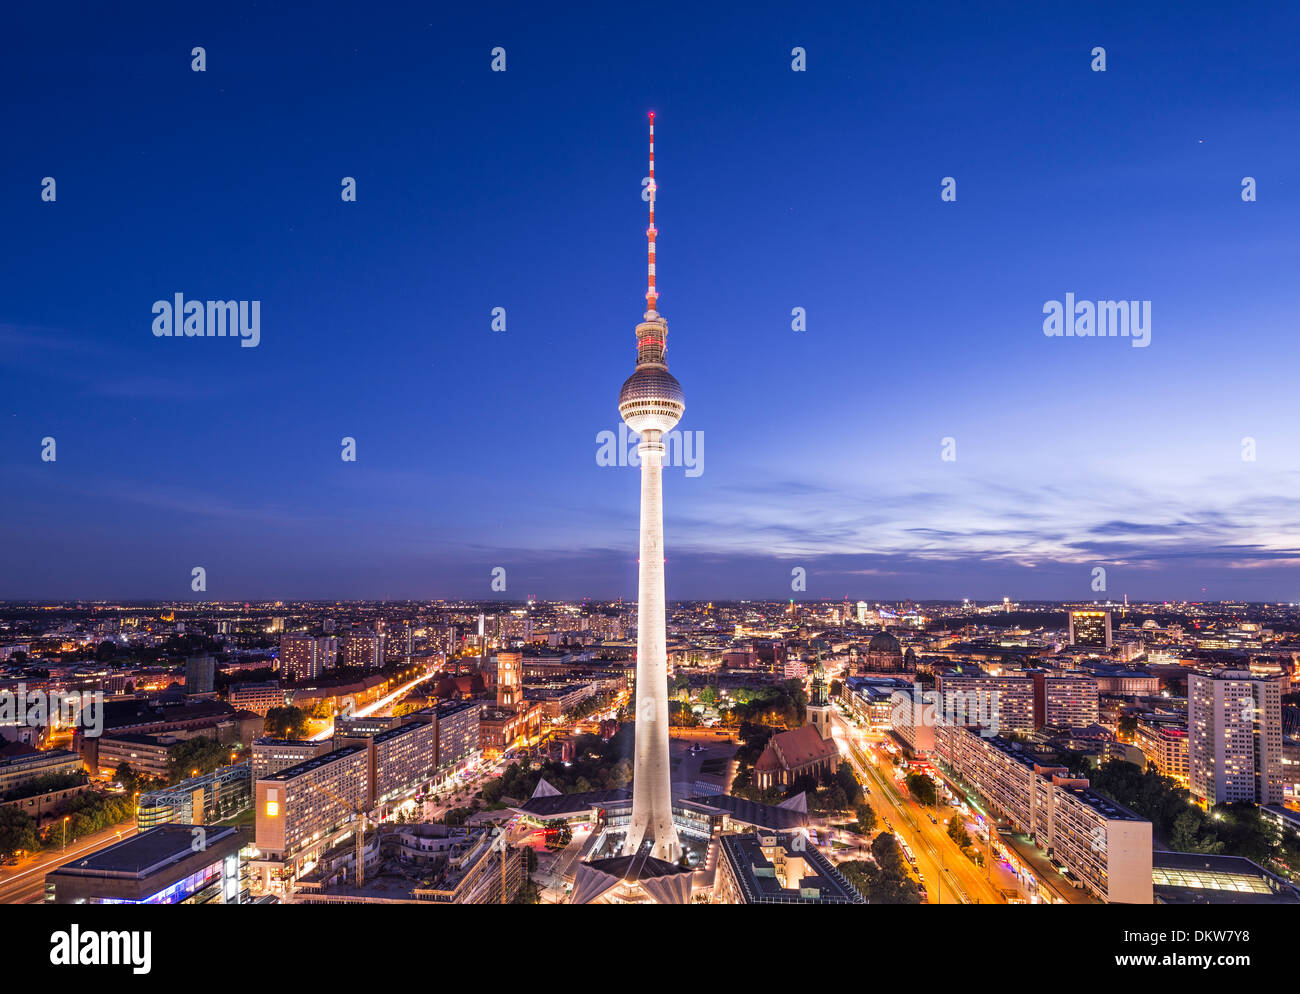 Cityscape of Berlin, Germany at Alexanderplatz. - Stock Image